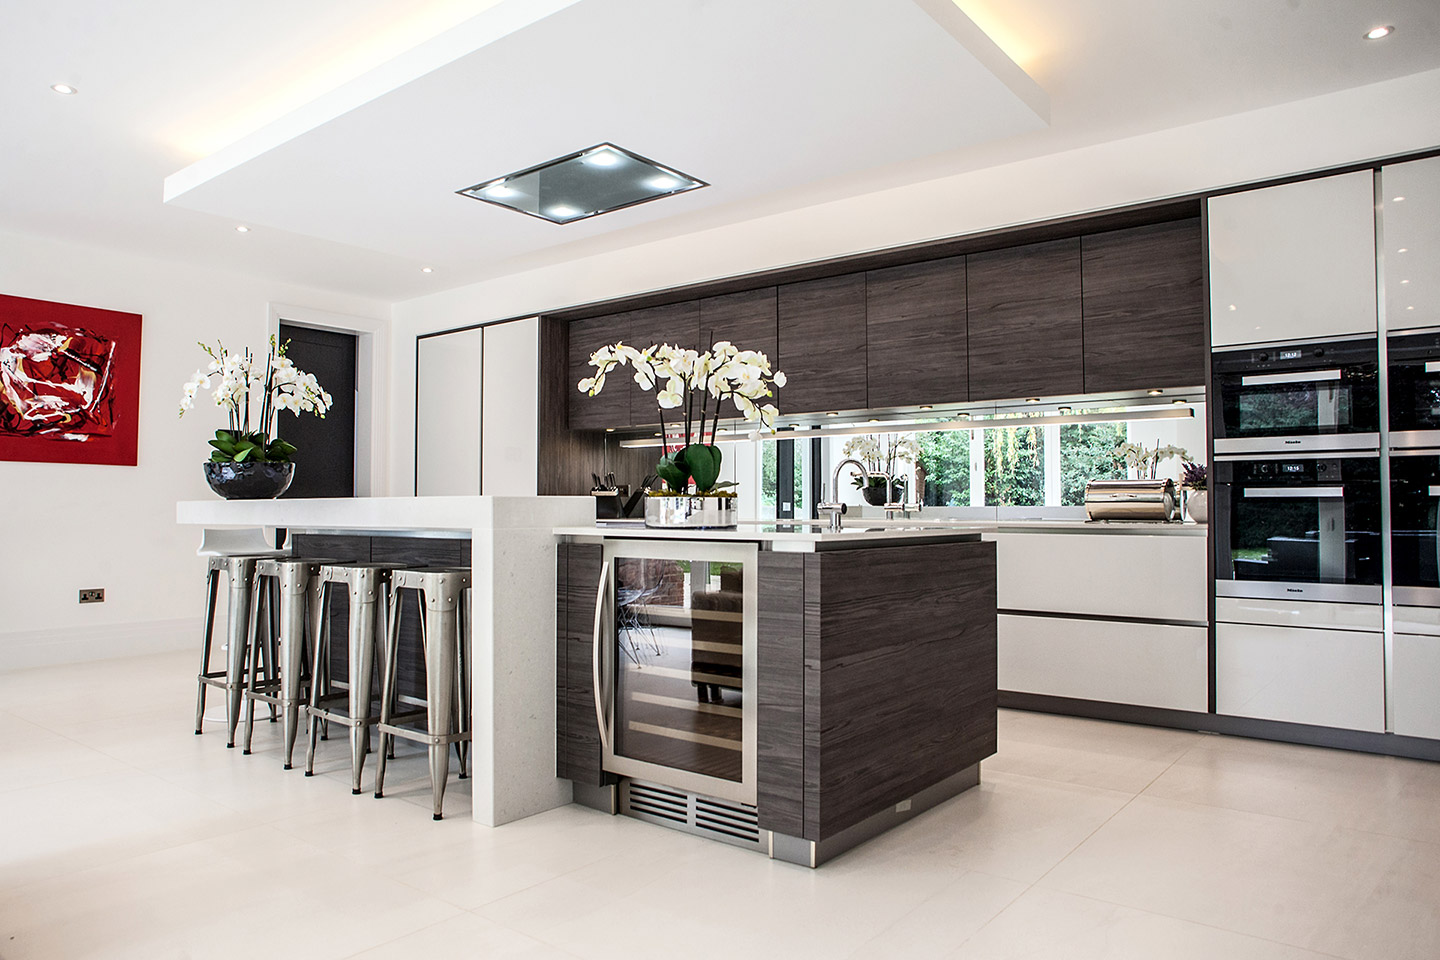 Brilliant white glossy lacquer kitchen with dark pine timber accents